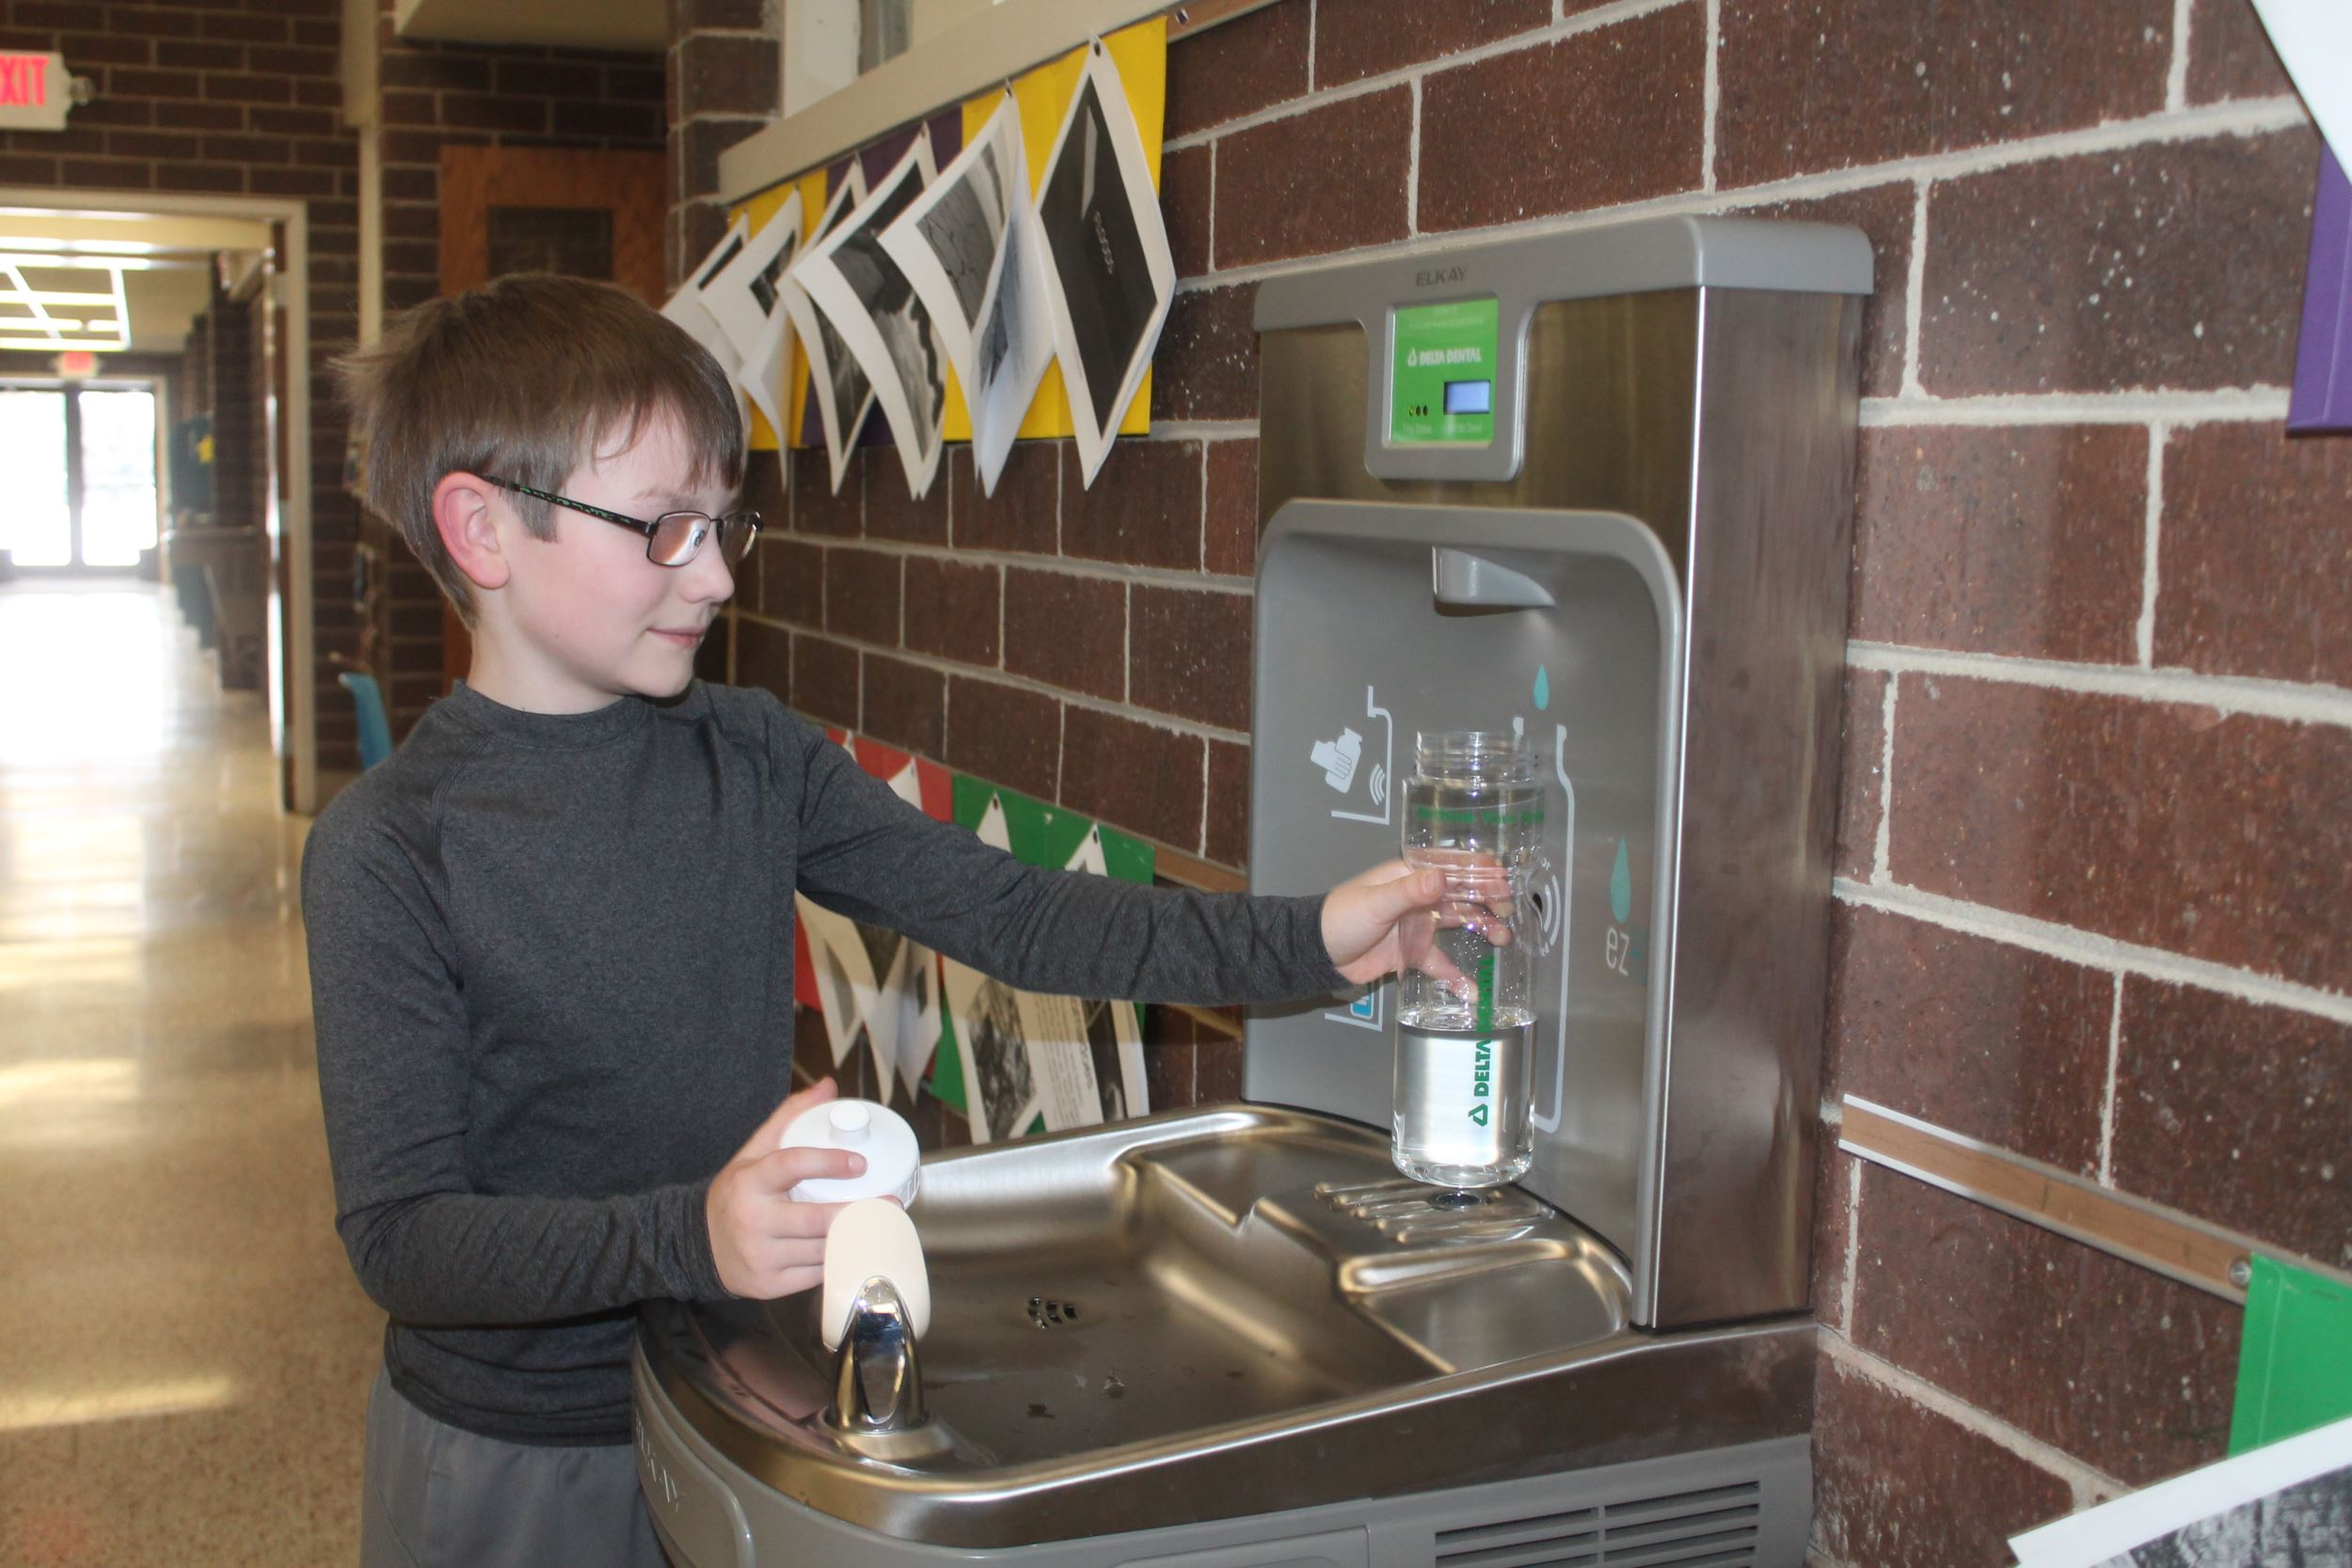 Rethink your Drink: Make it easy to choose water